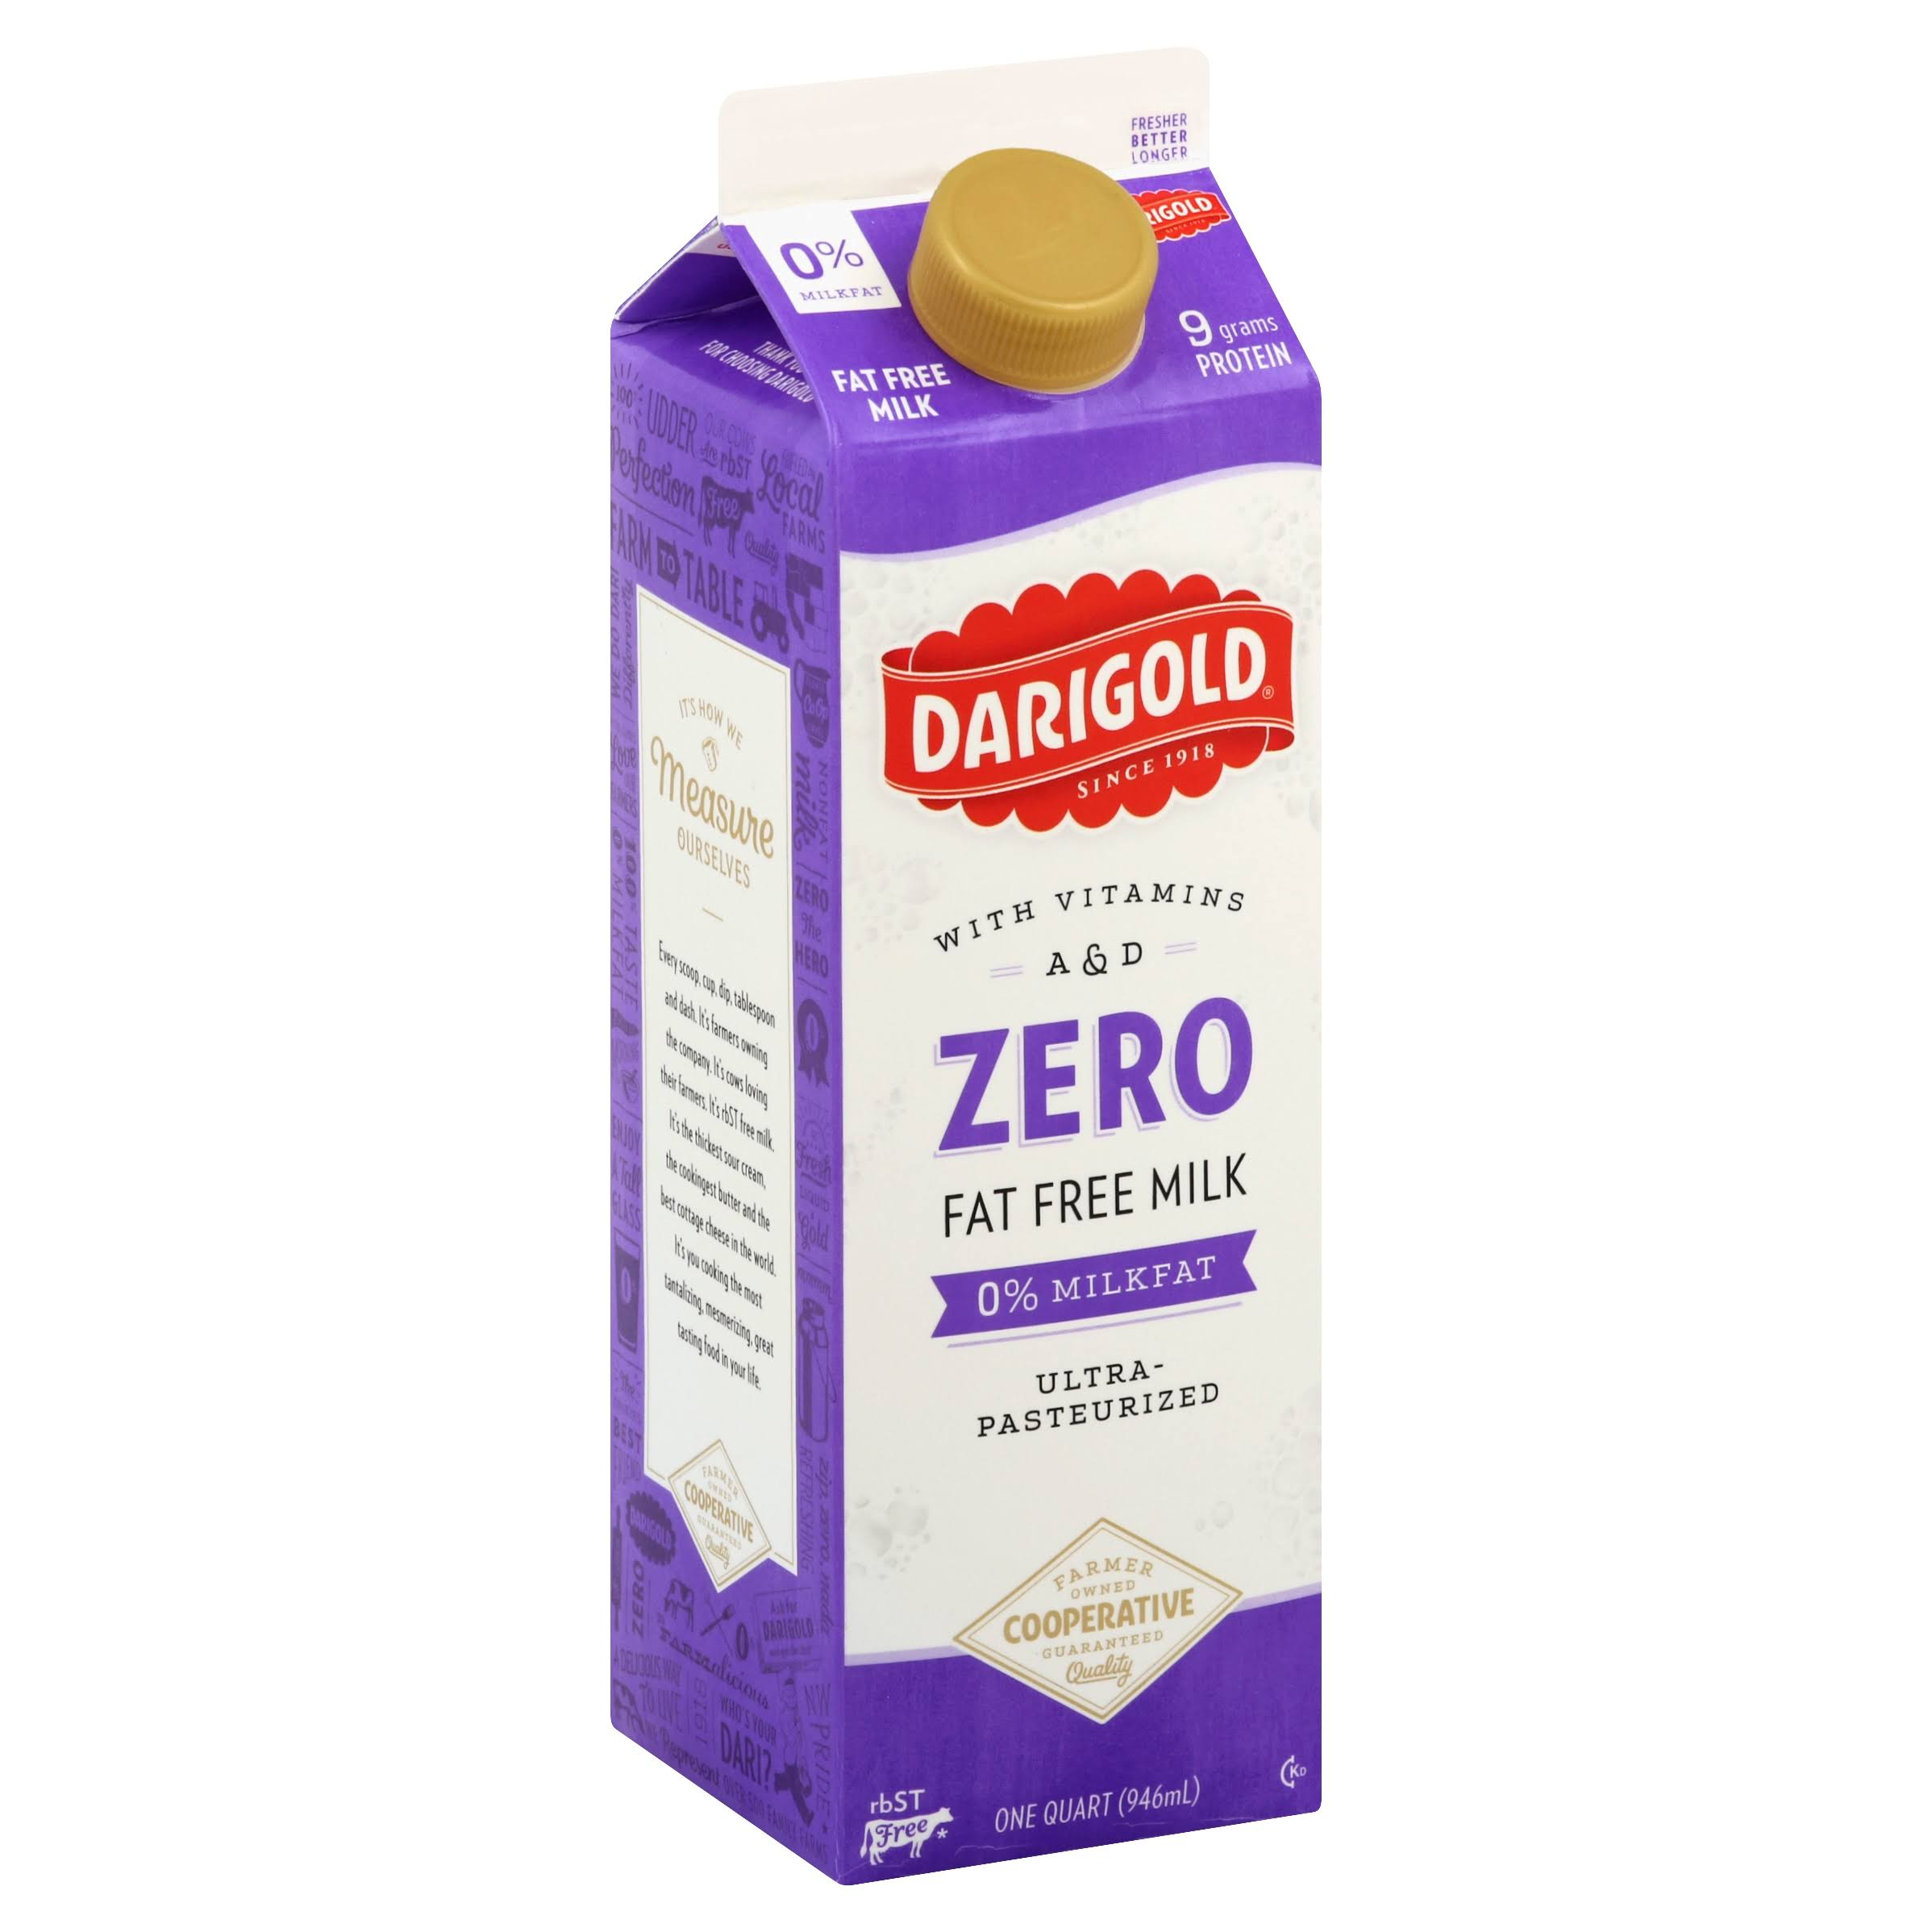 Darigold Ultra Pasteurized Fat Free Milk - 32oz